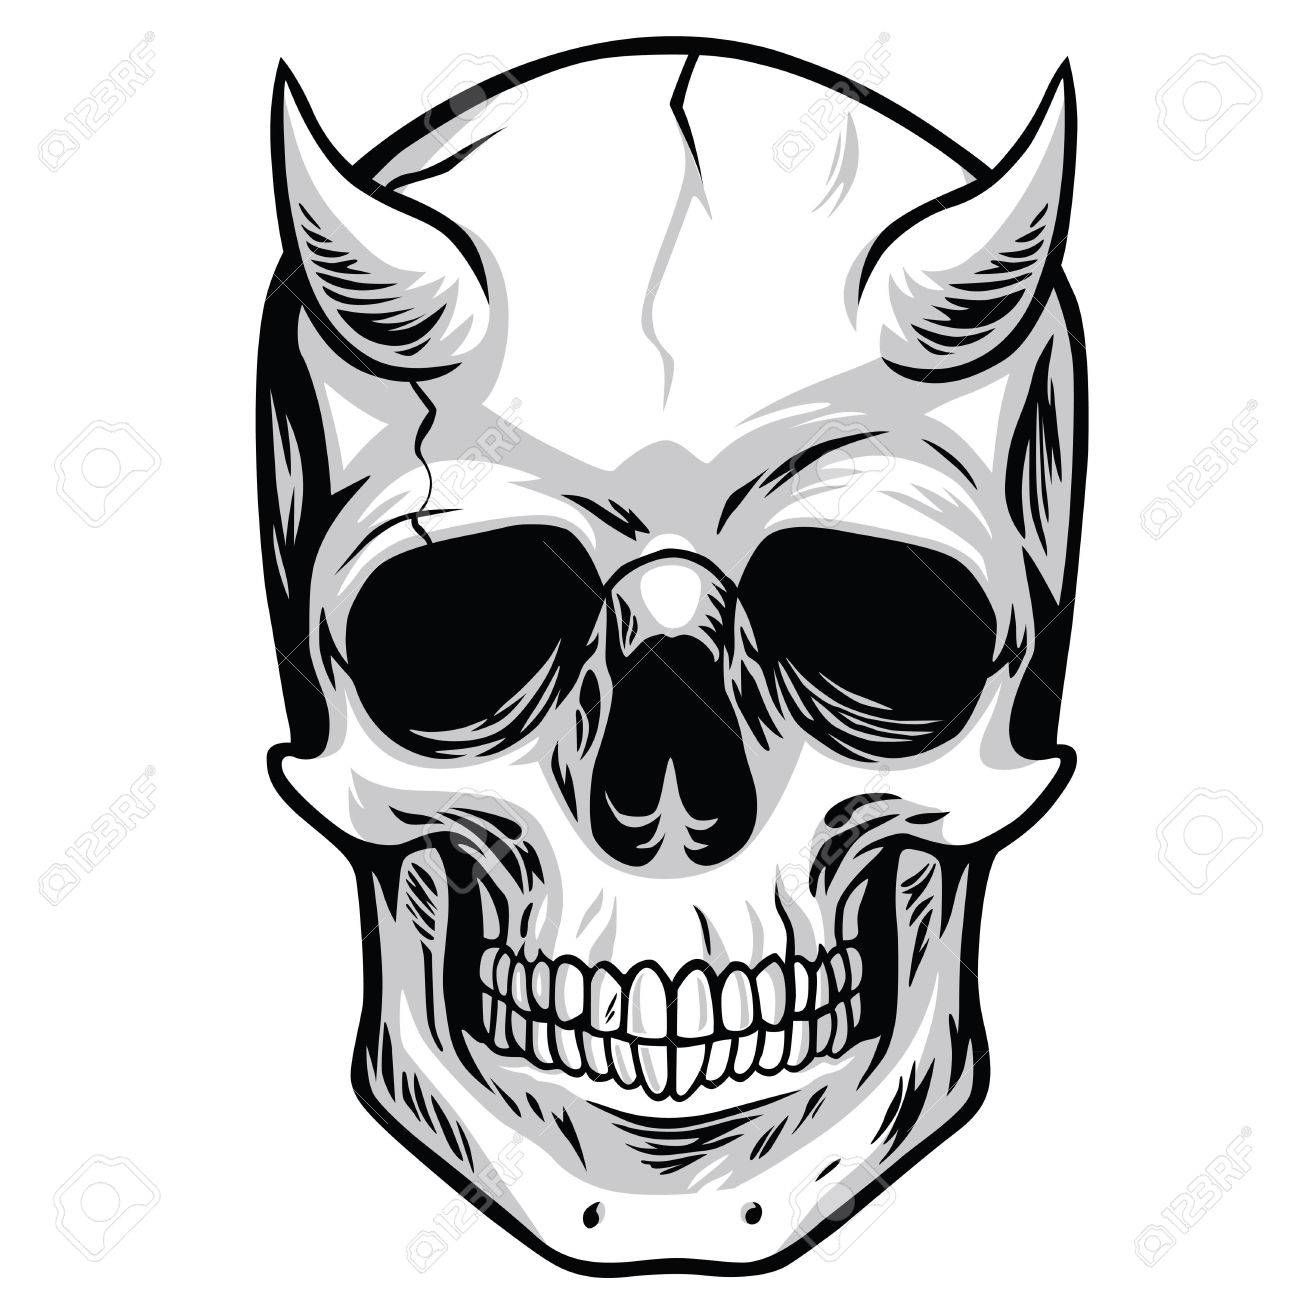 Image Result For Skull Skull Drawing Skull Illustration Skulls Drawing